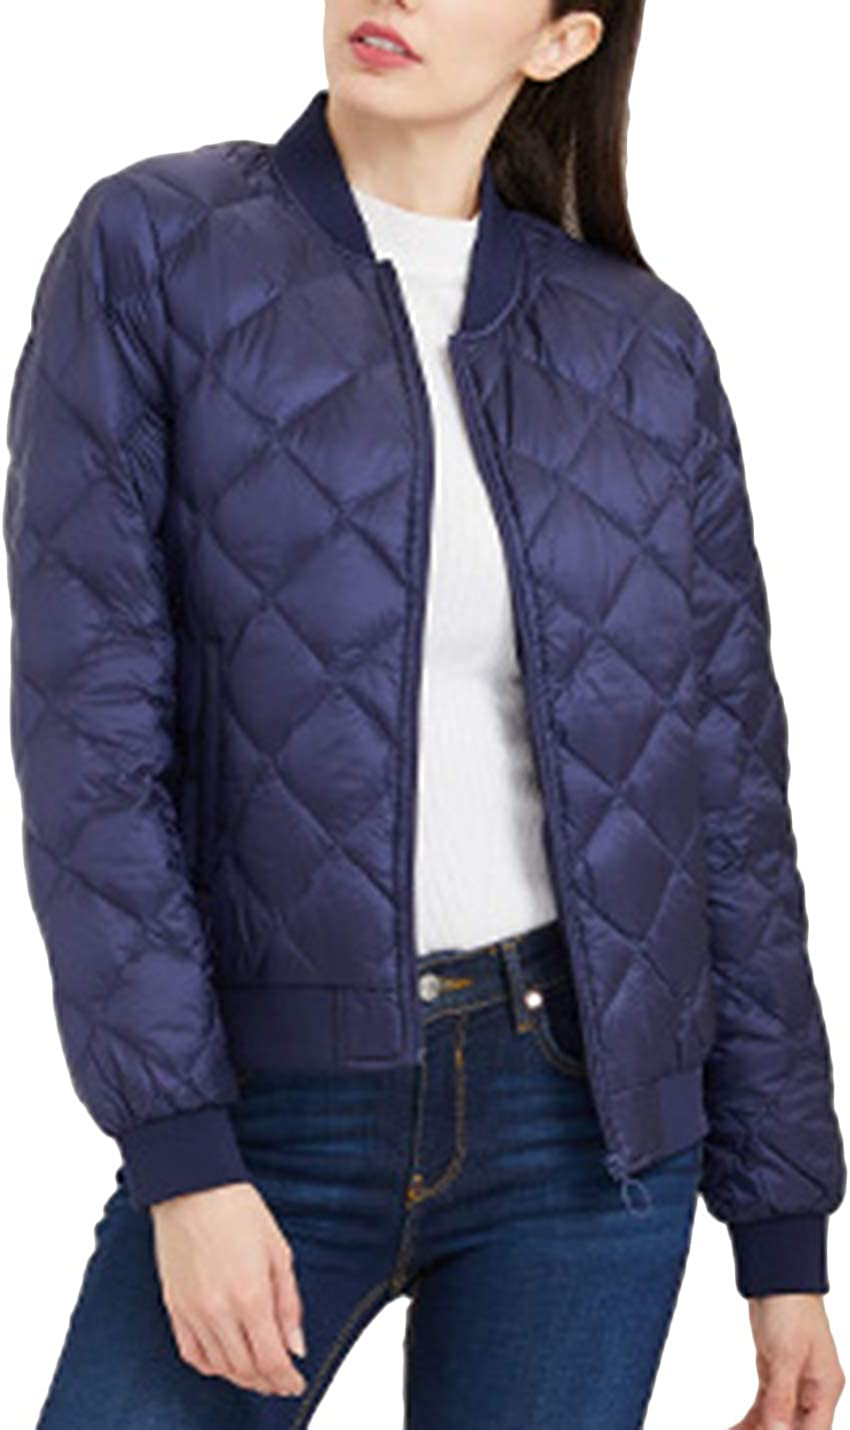 HaoMay Women's Winter Warm Full-Zip Quilted Puffer Down Baseball Jackets